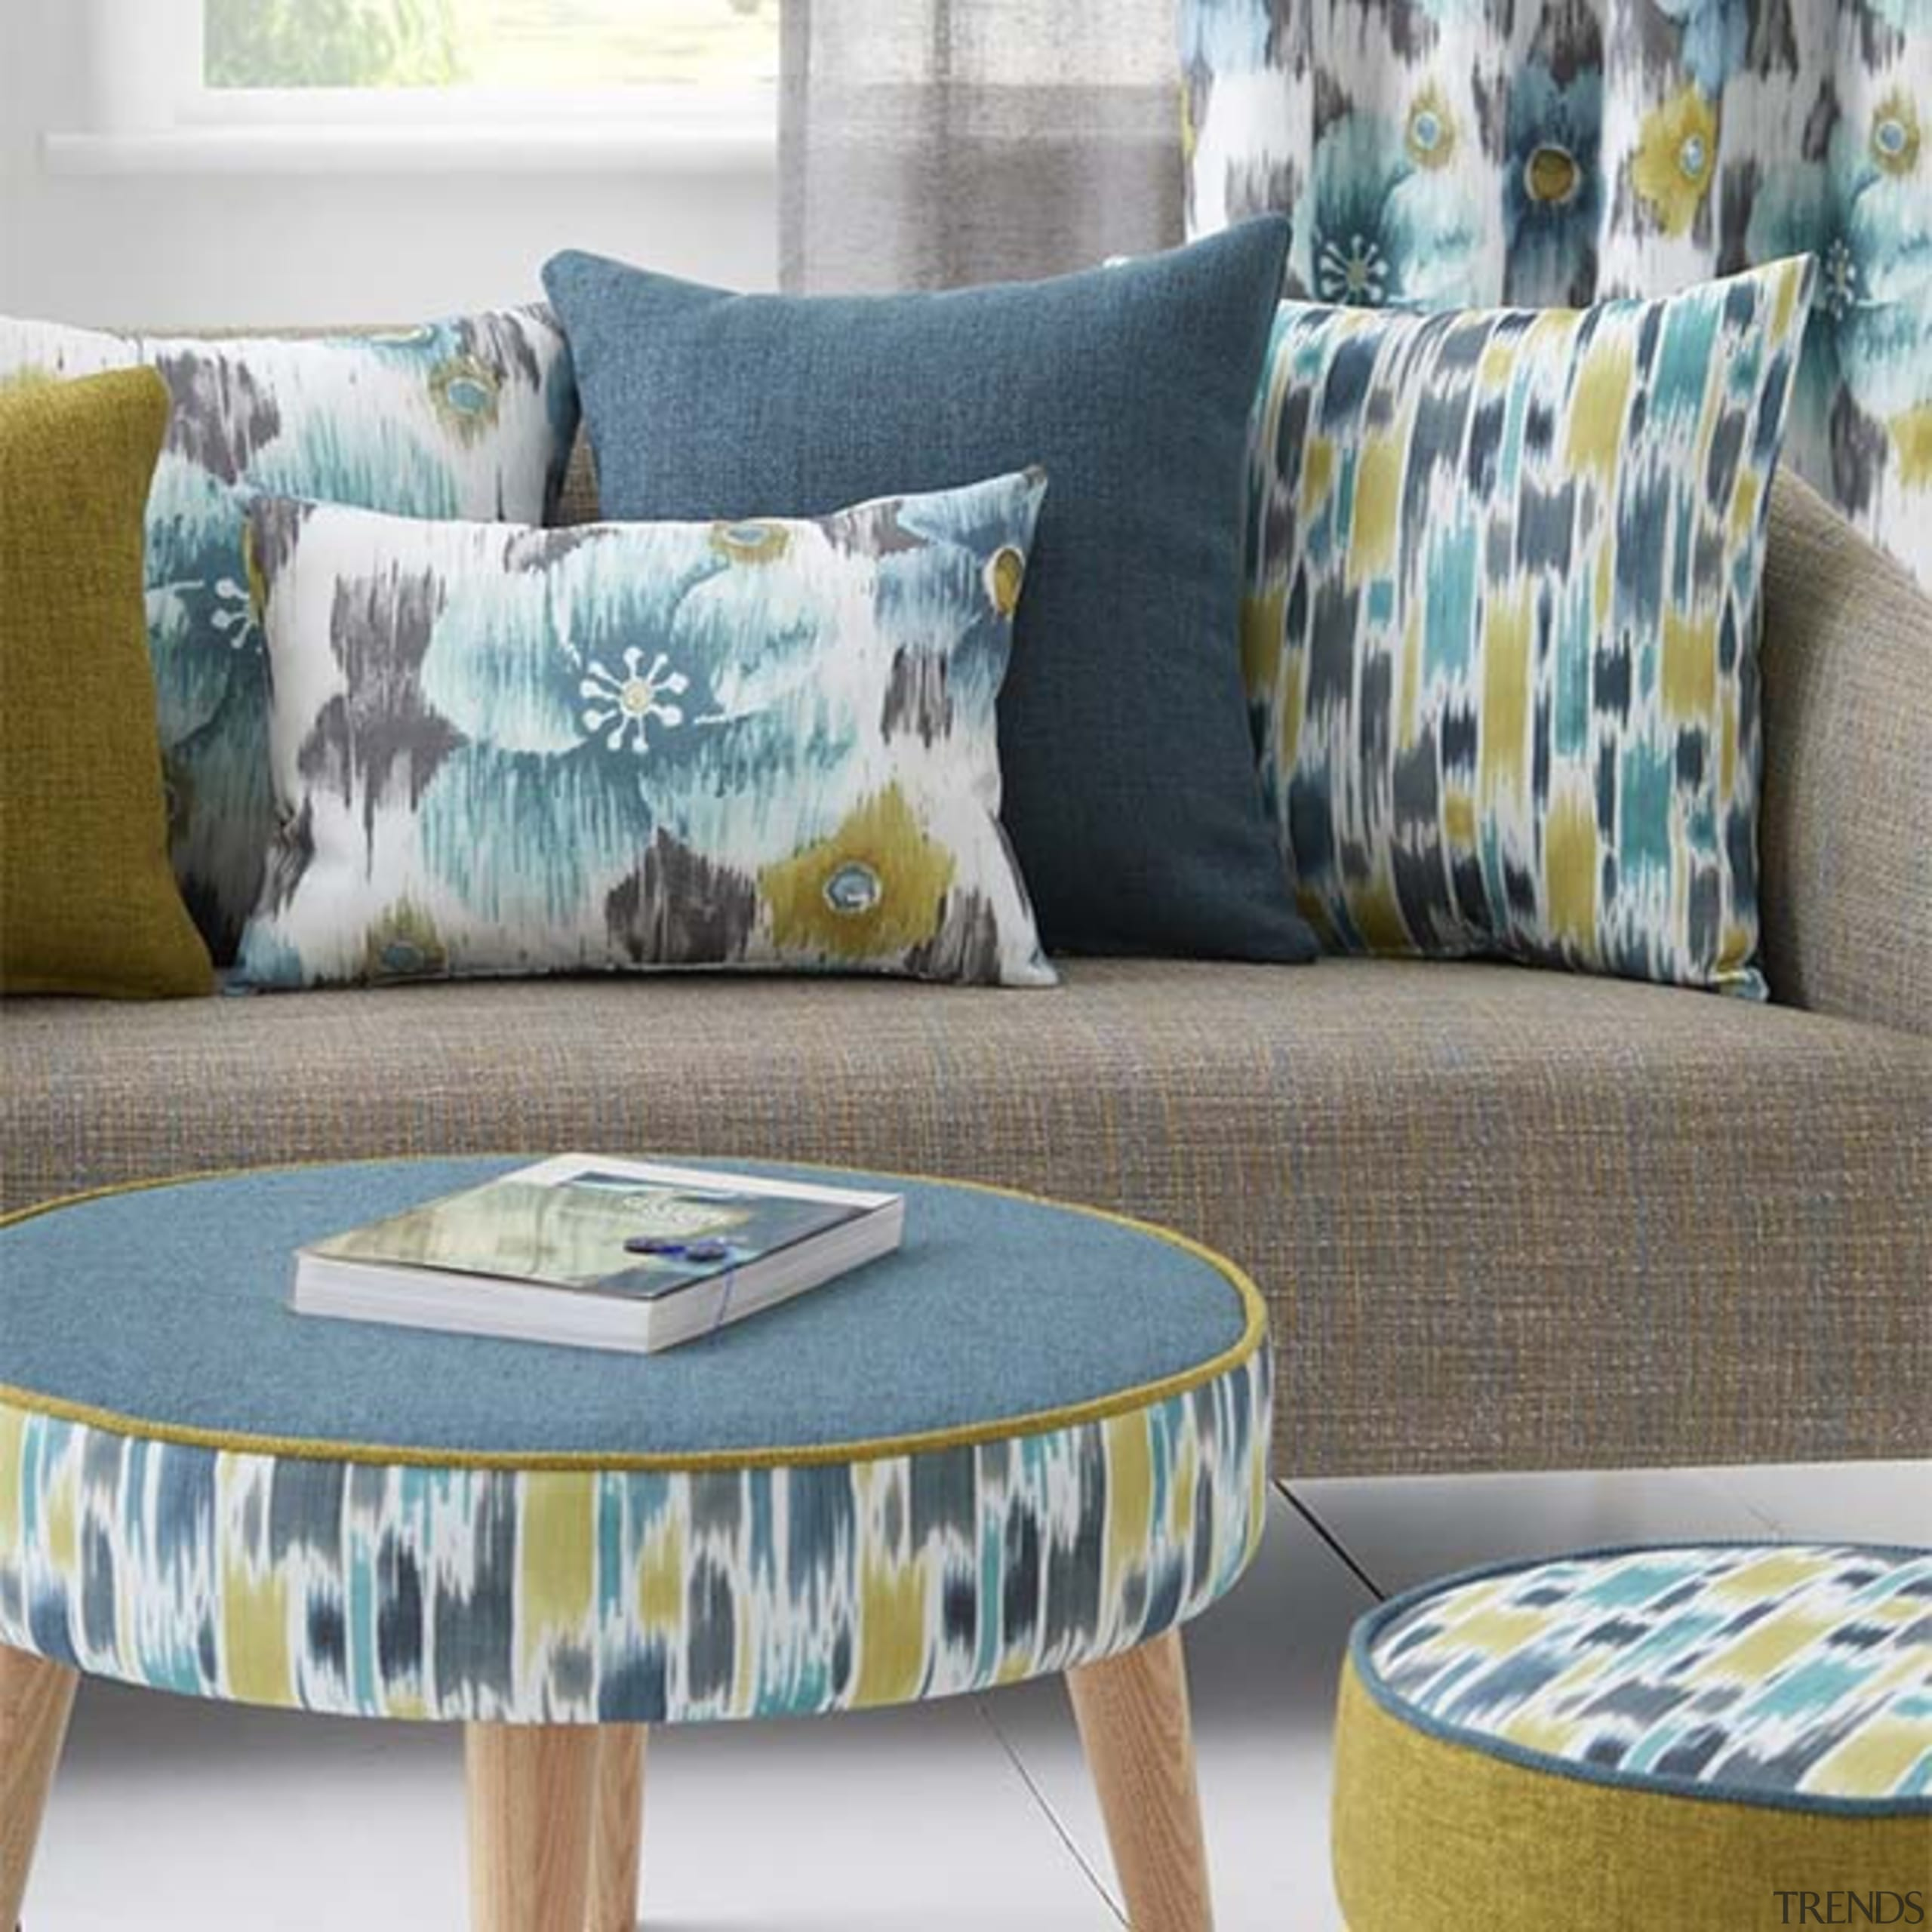 Introducing unique water colour prints in an array chair, coffee table, couch, cushion, furniture, home, interior design, living room, table, textile, gray